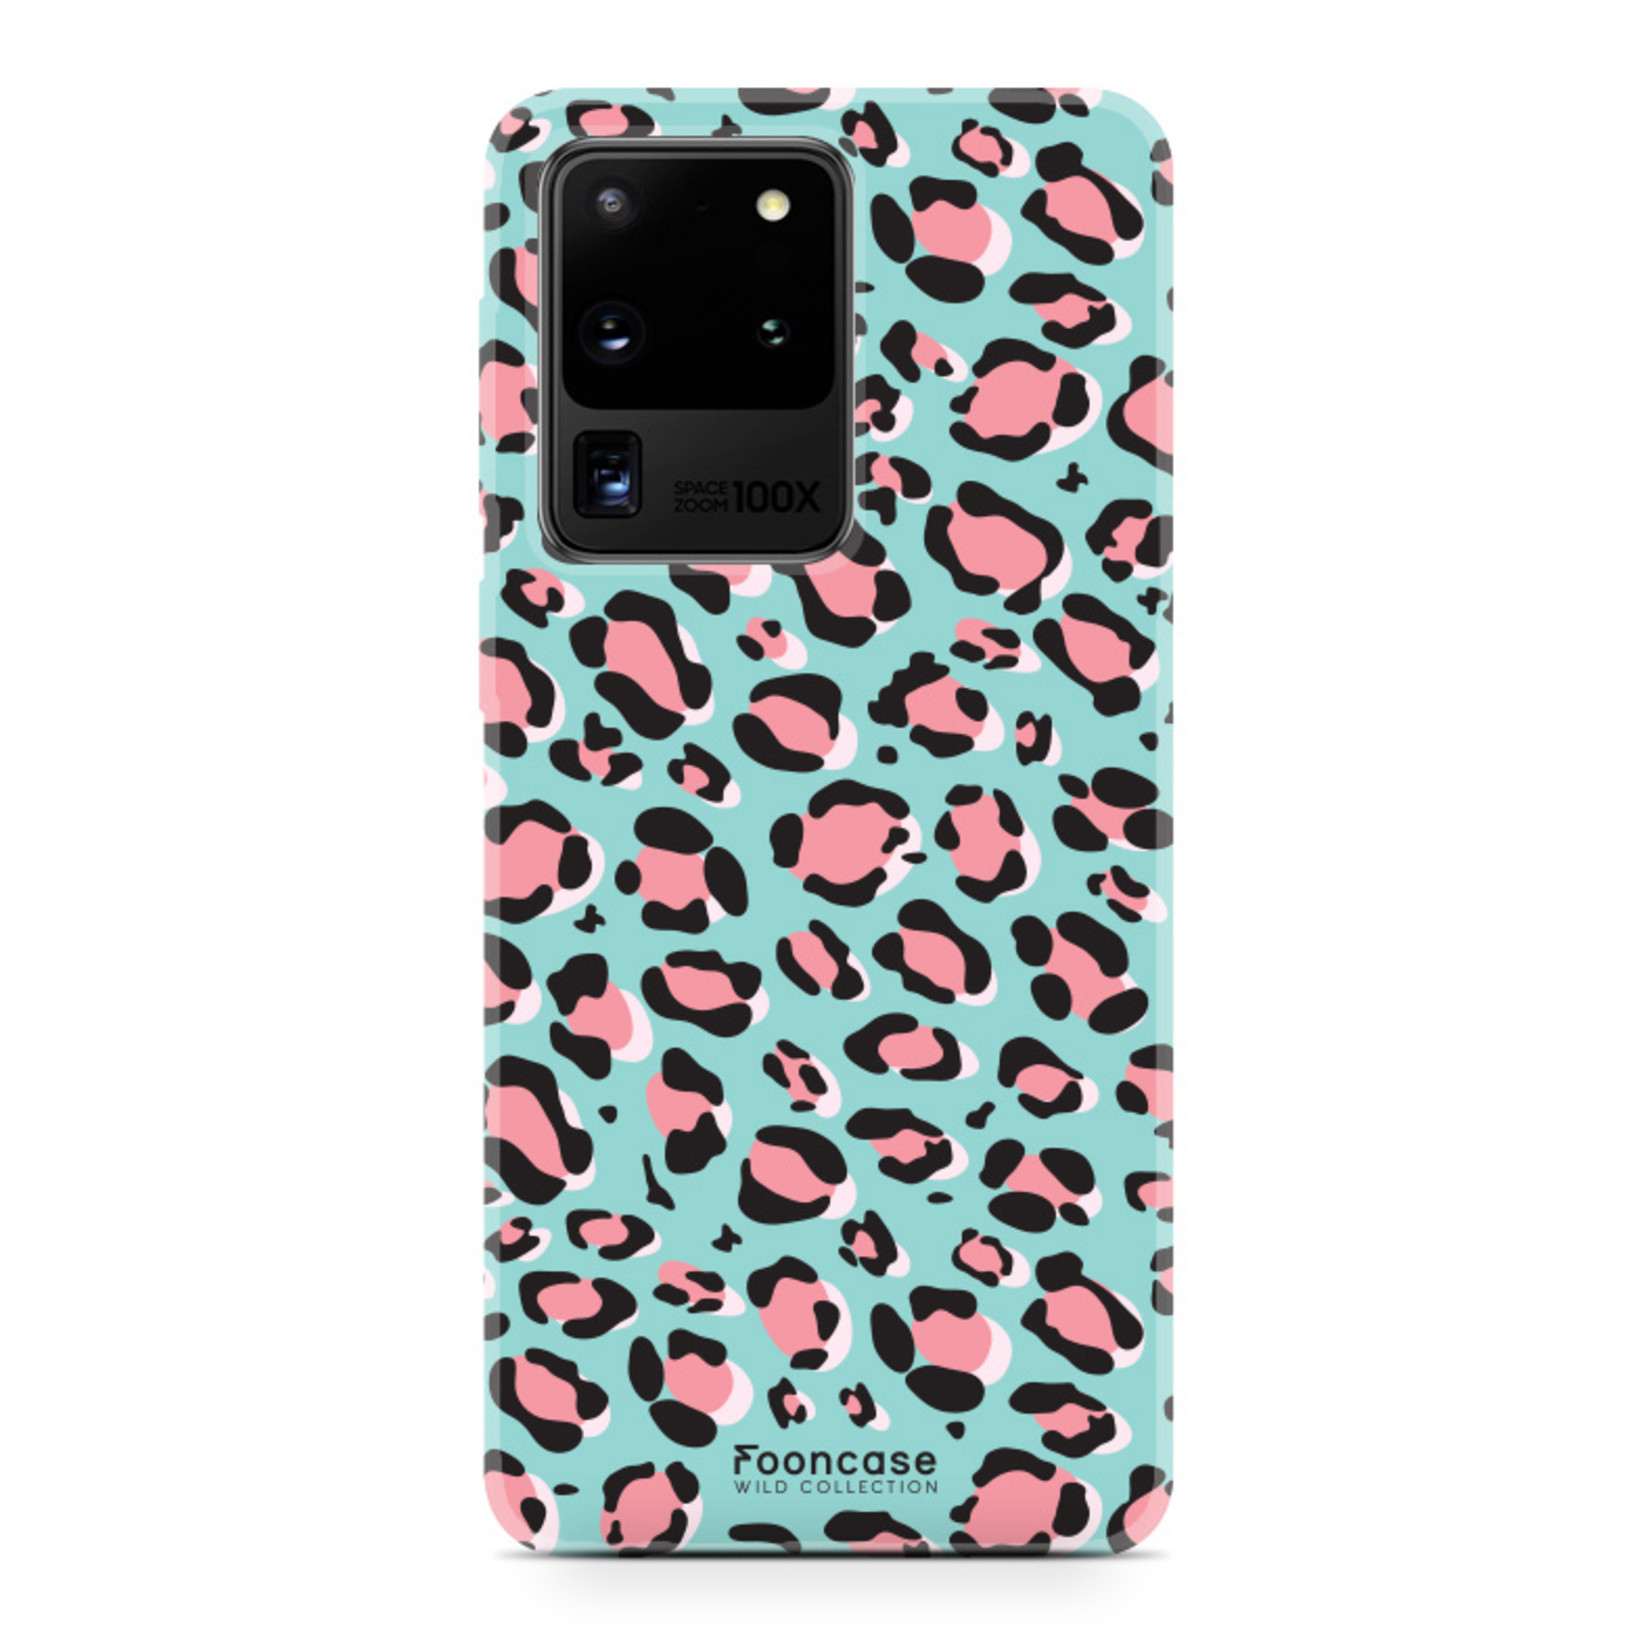 FOONCASE Samsung Galaxy S20 Ultra hoesje TPU Soft Case - Back Cover - WILD COLLECTION / Luipaard / Leopard print / Blauw